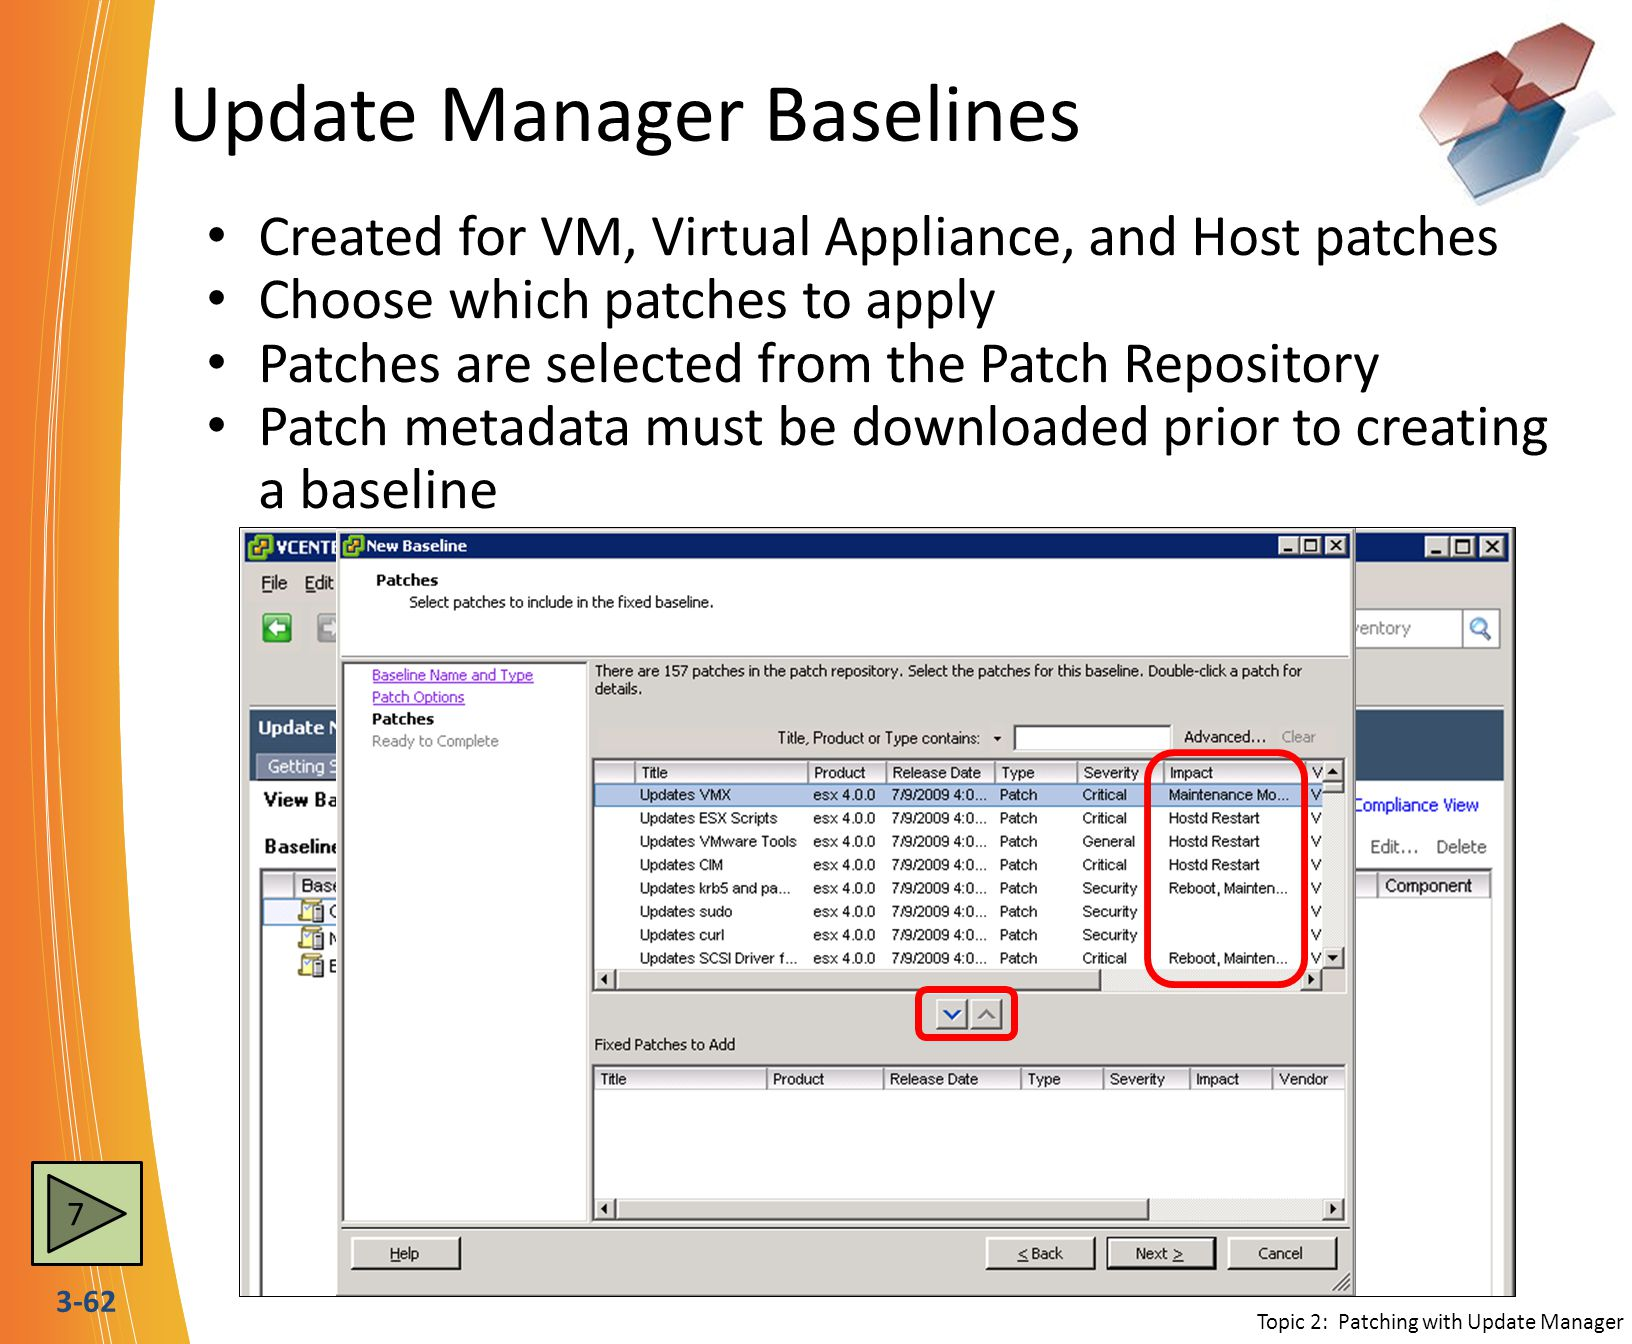 Update Manager Baselines